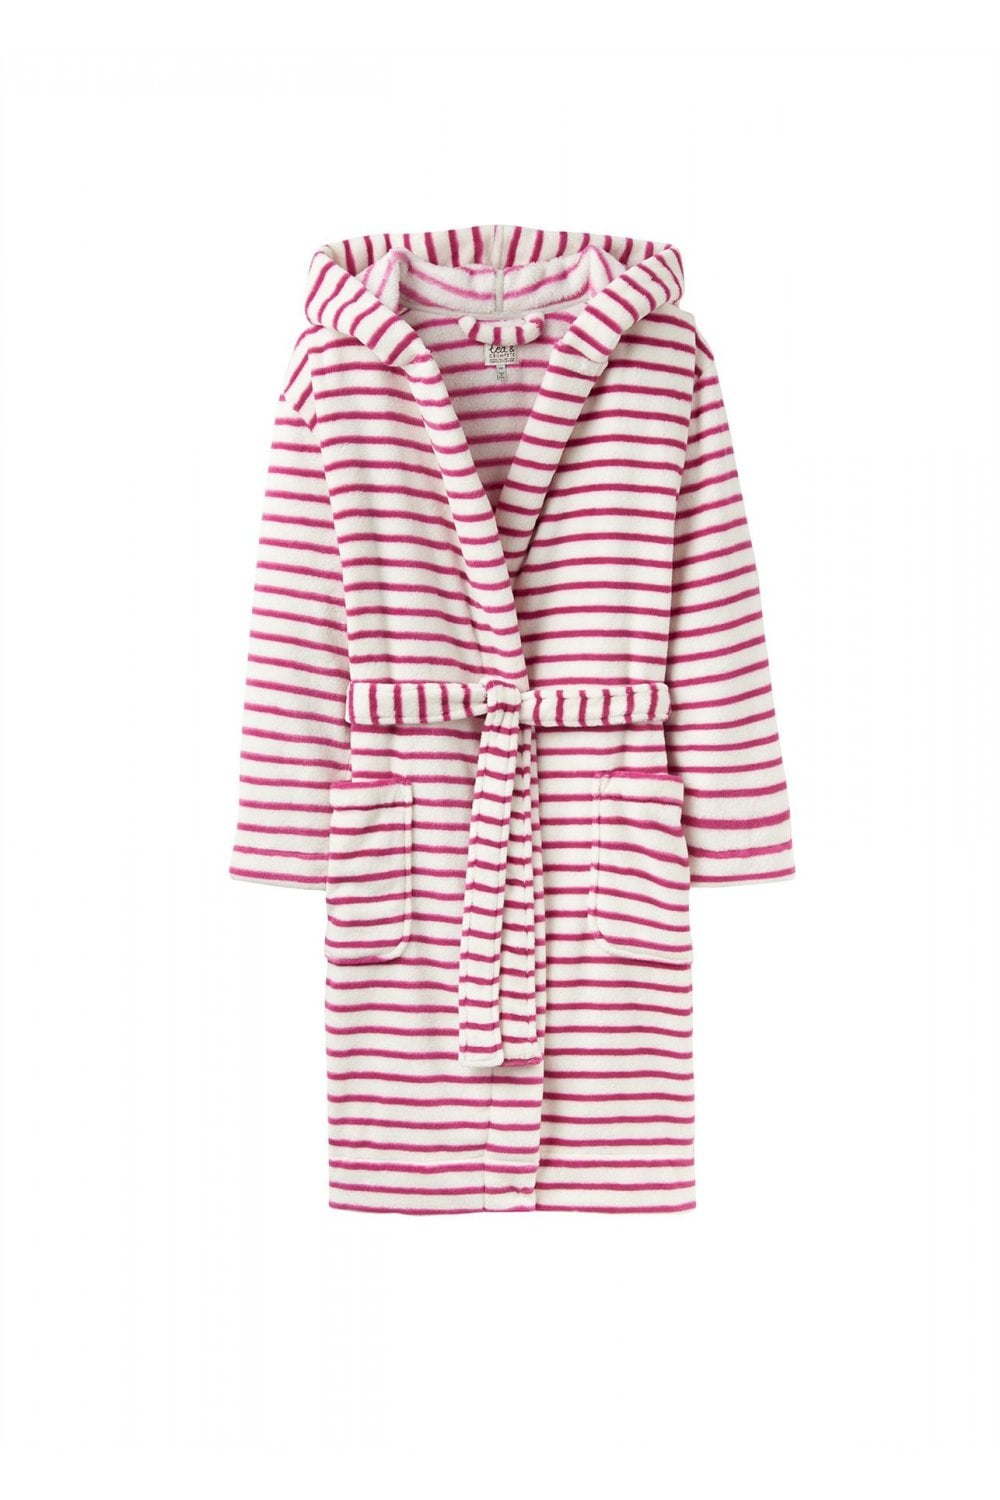 6eeb81f3c6 Joules Womens Rita Hooded Fleece Dressing Gown - Pink Stripe ...